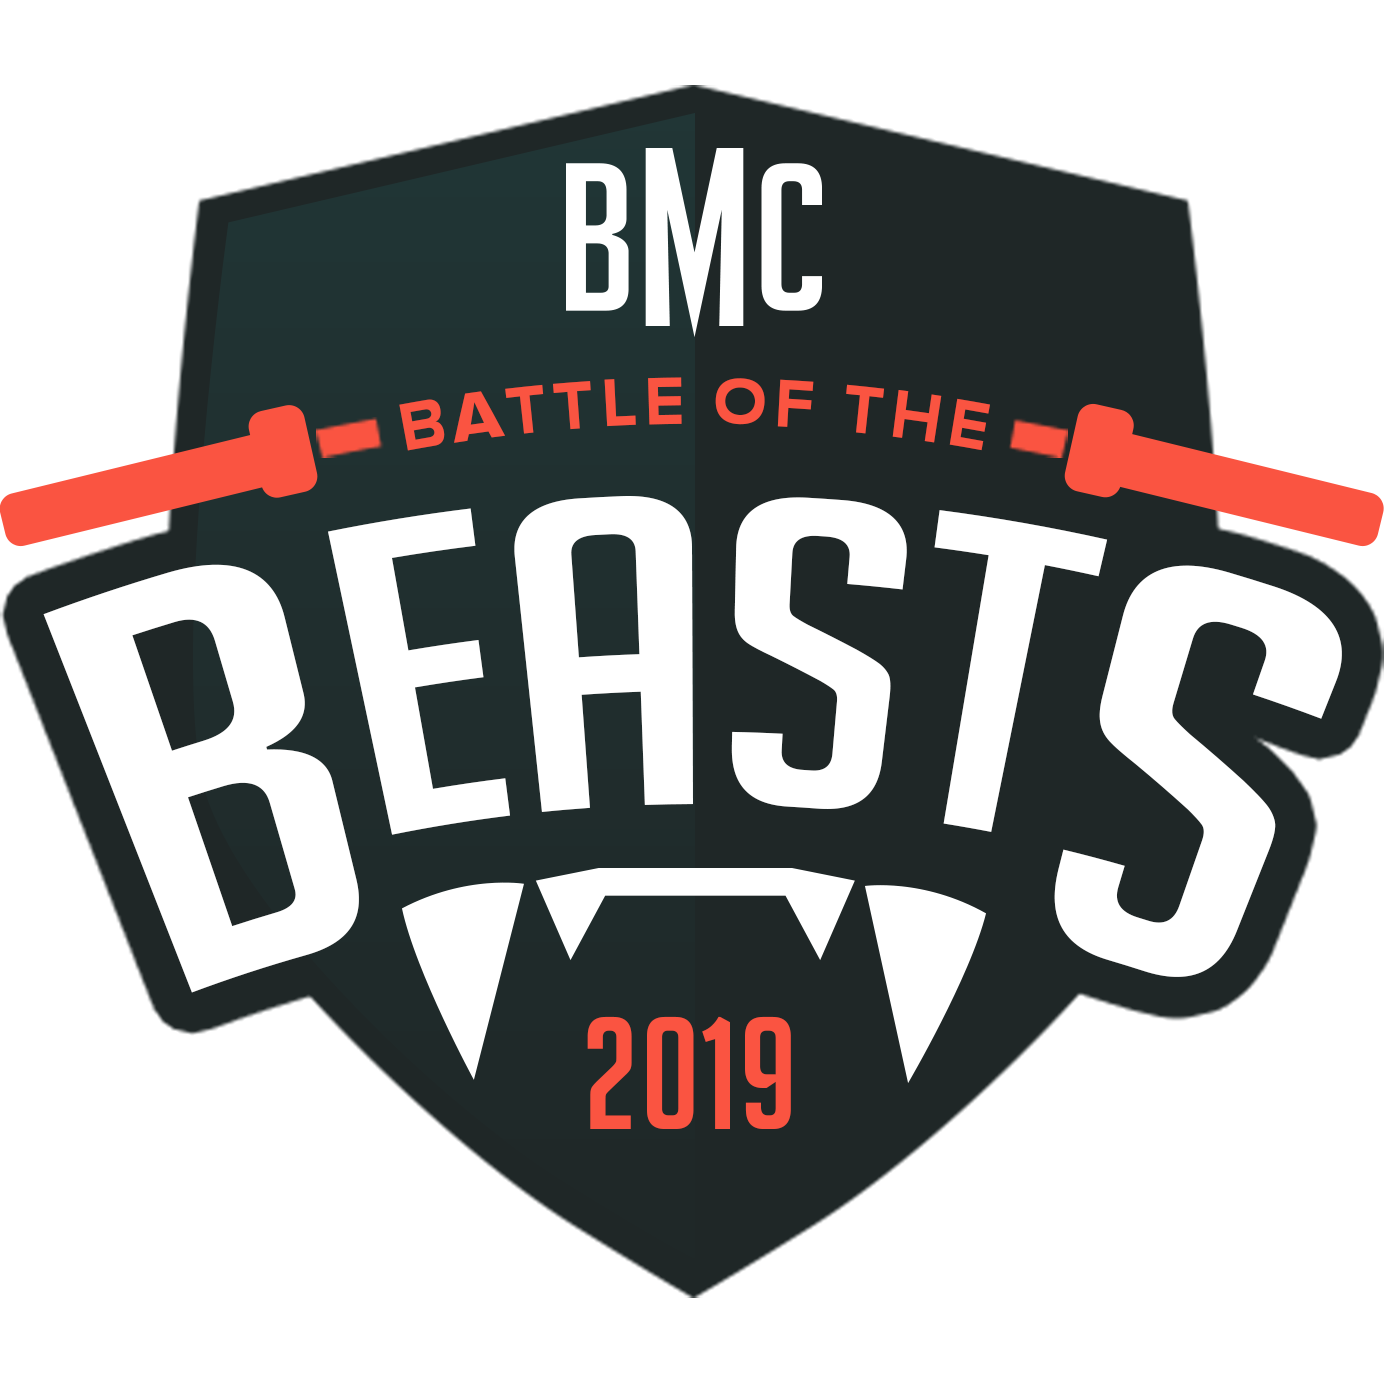 Battle of the Beasts 2019